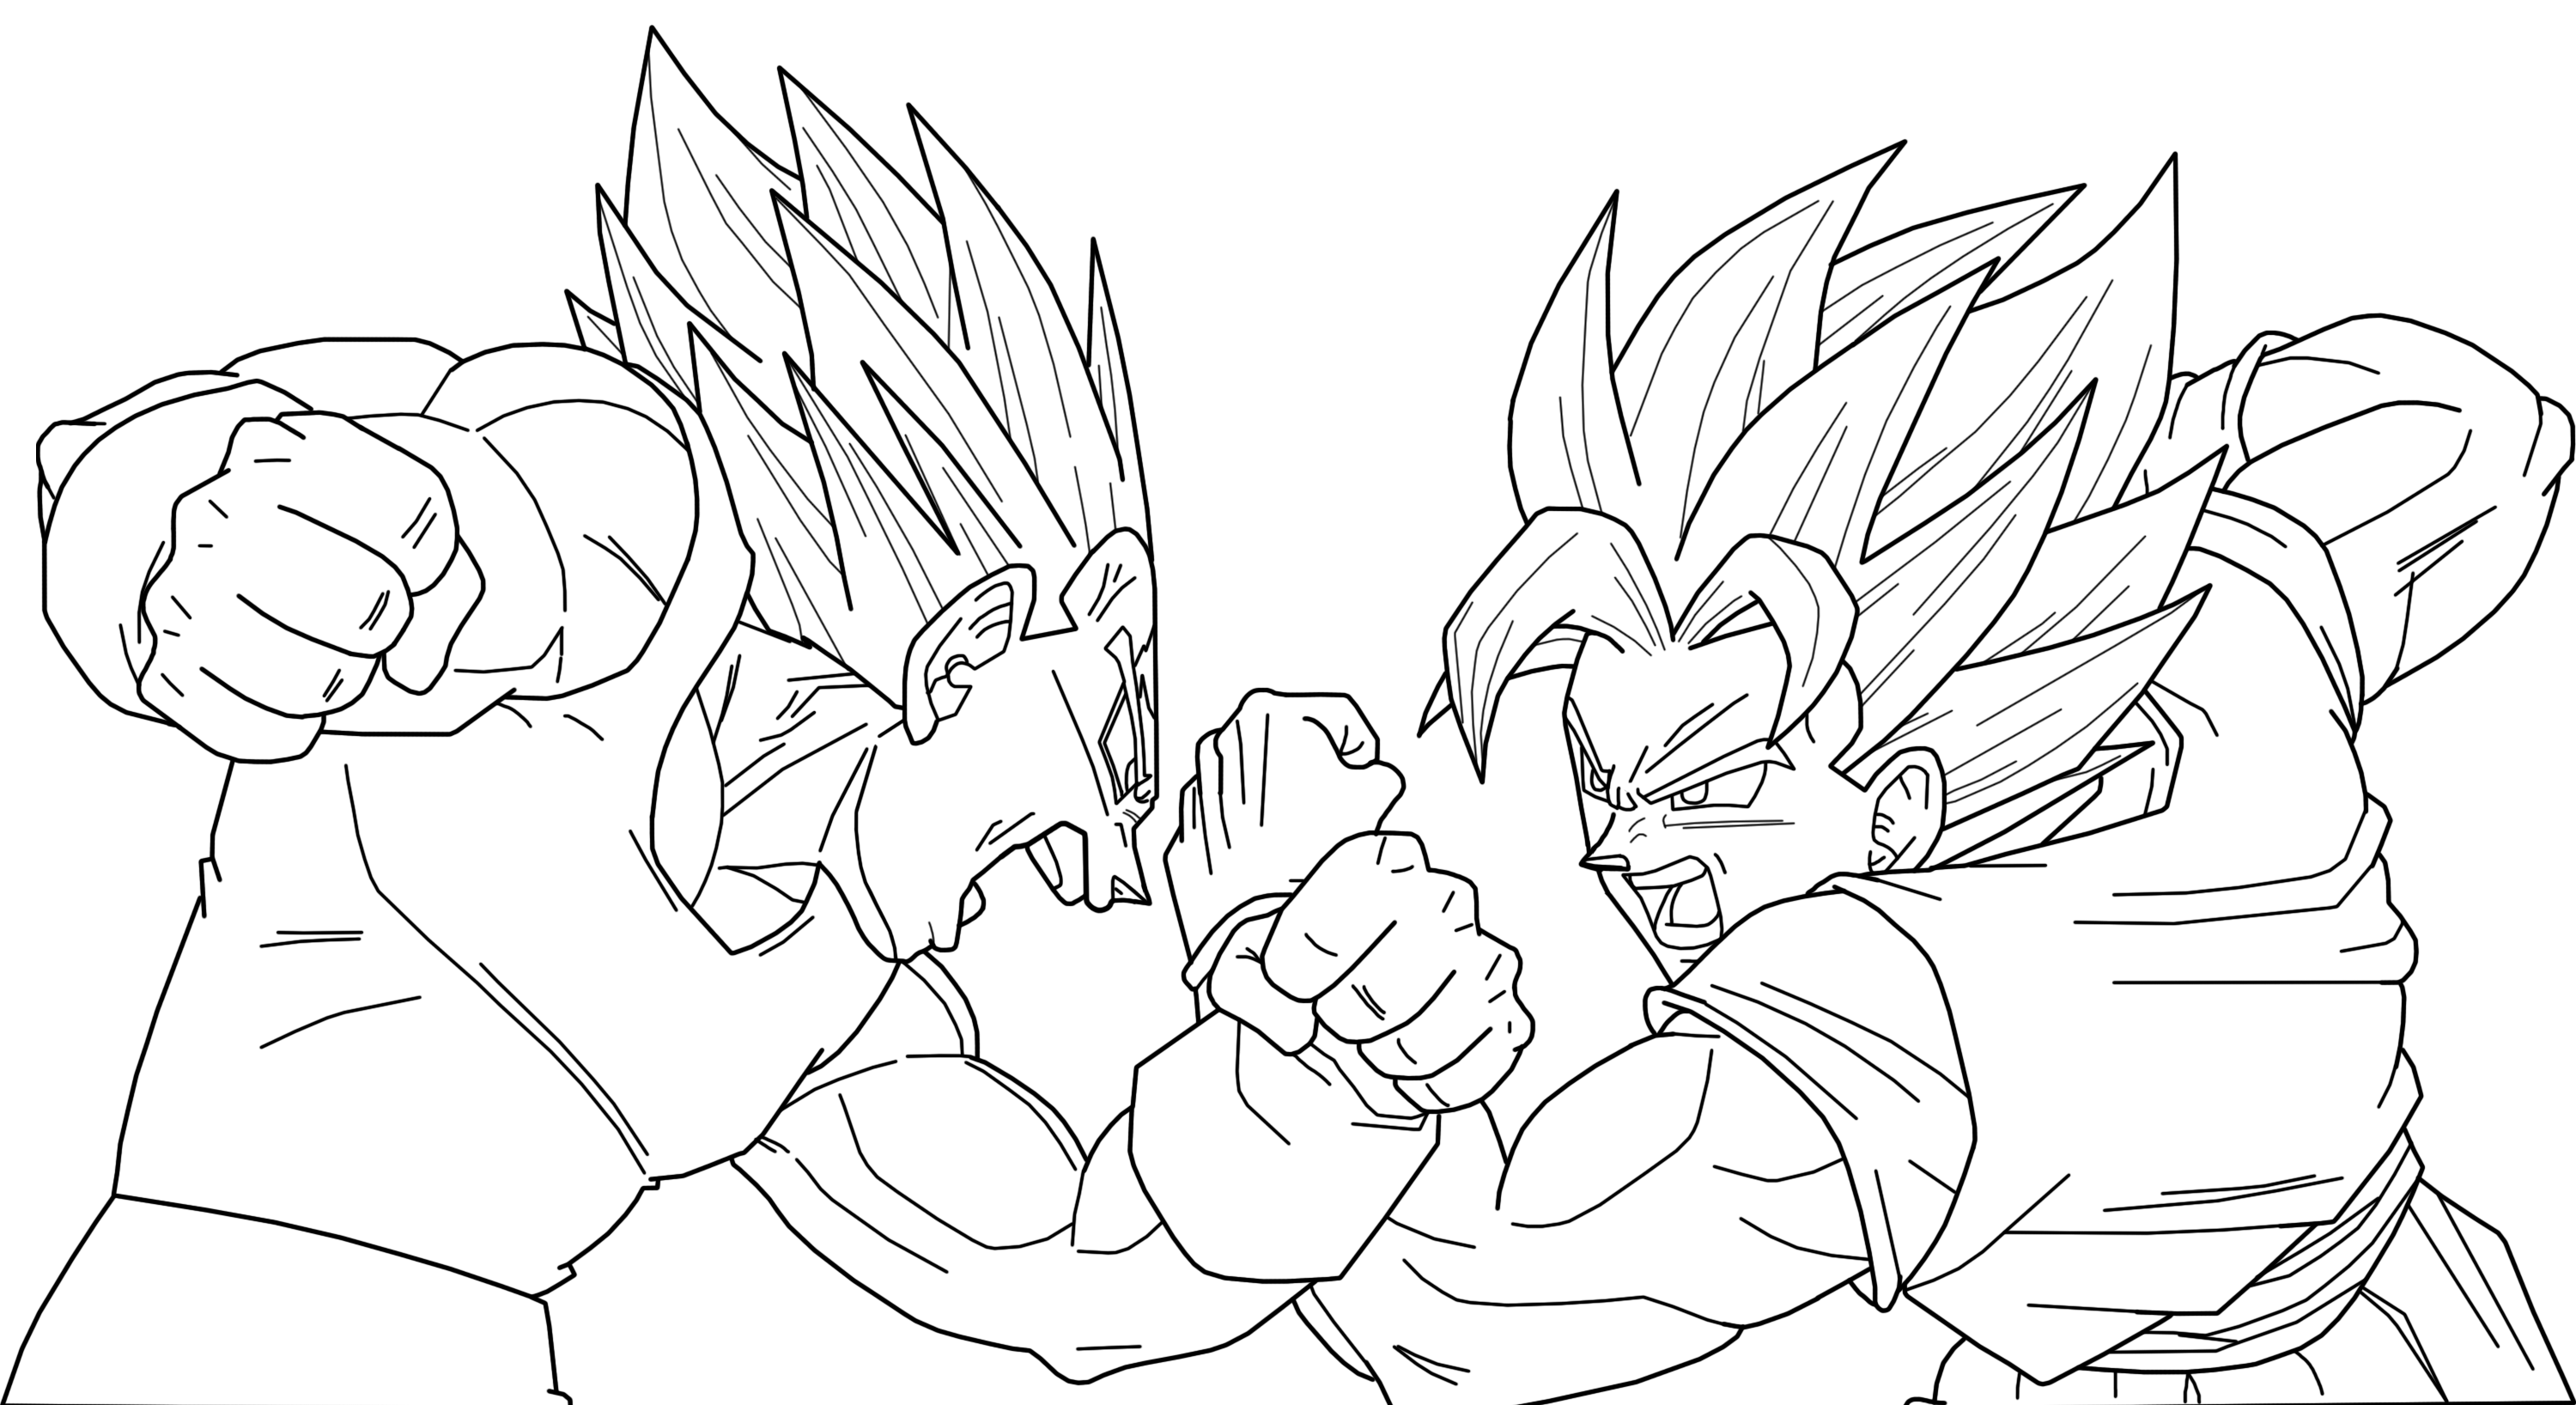 Majin Vegeta Vs SSJ2 Goku Lineart By BrusselTheSaiyan On